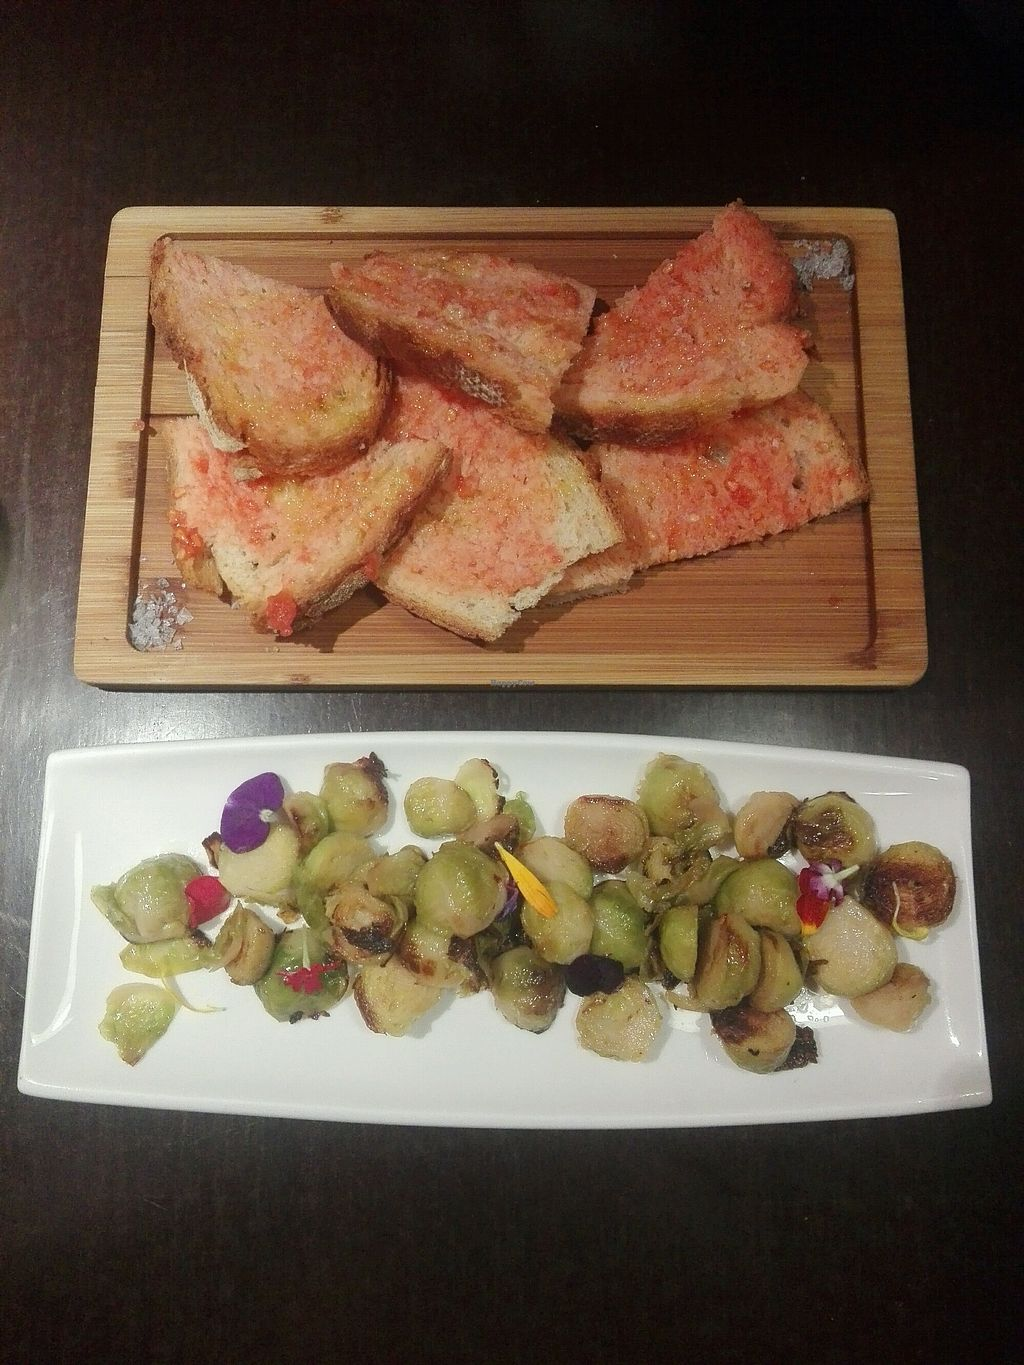 "Photo of Rasoterra Bistrot Vegetaria  by <a href=""/members/profile/Pteri"">Pteri</a> <br/>Seasonal brussel sprouts with home made bread and fresh tomatos <br/> February 13, 2018  - <a href='/contact/abuse/image/37964/358763'>Report</a>"